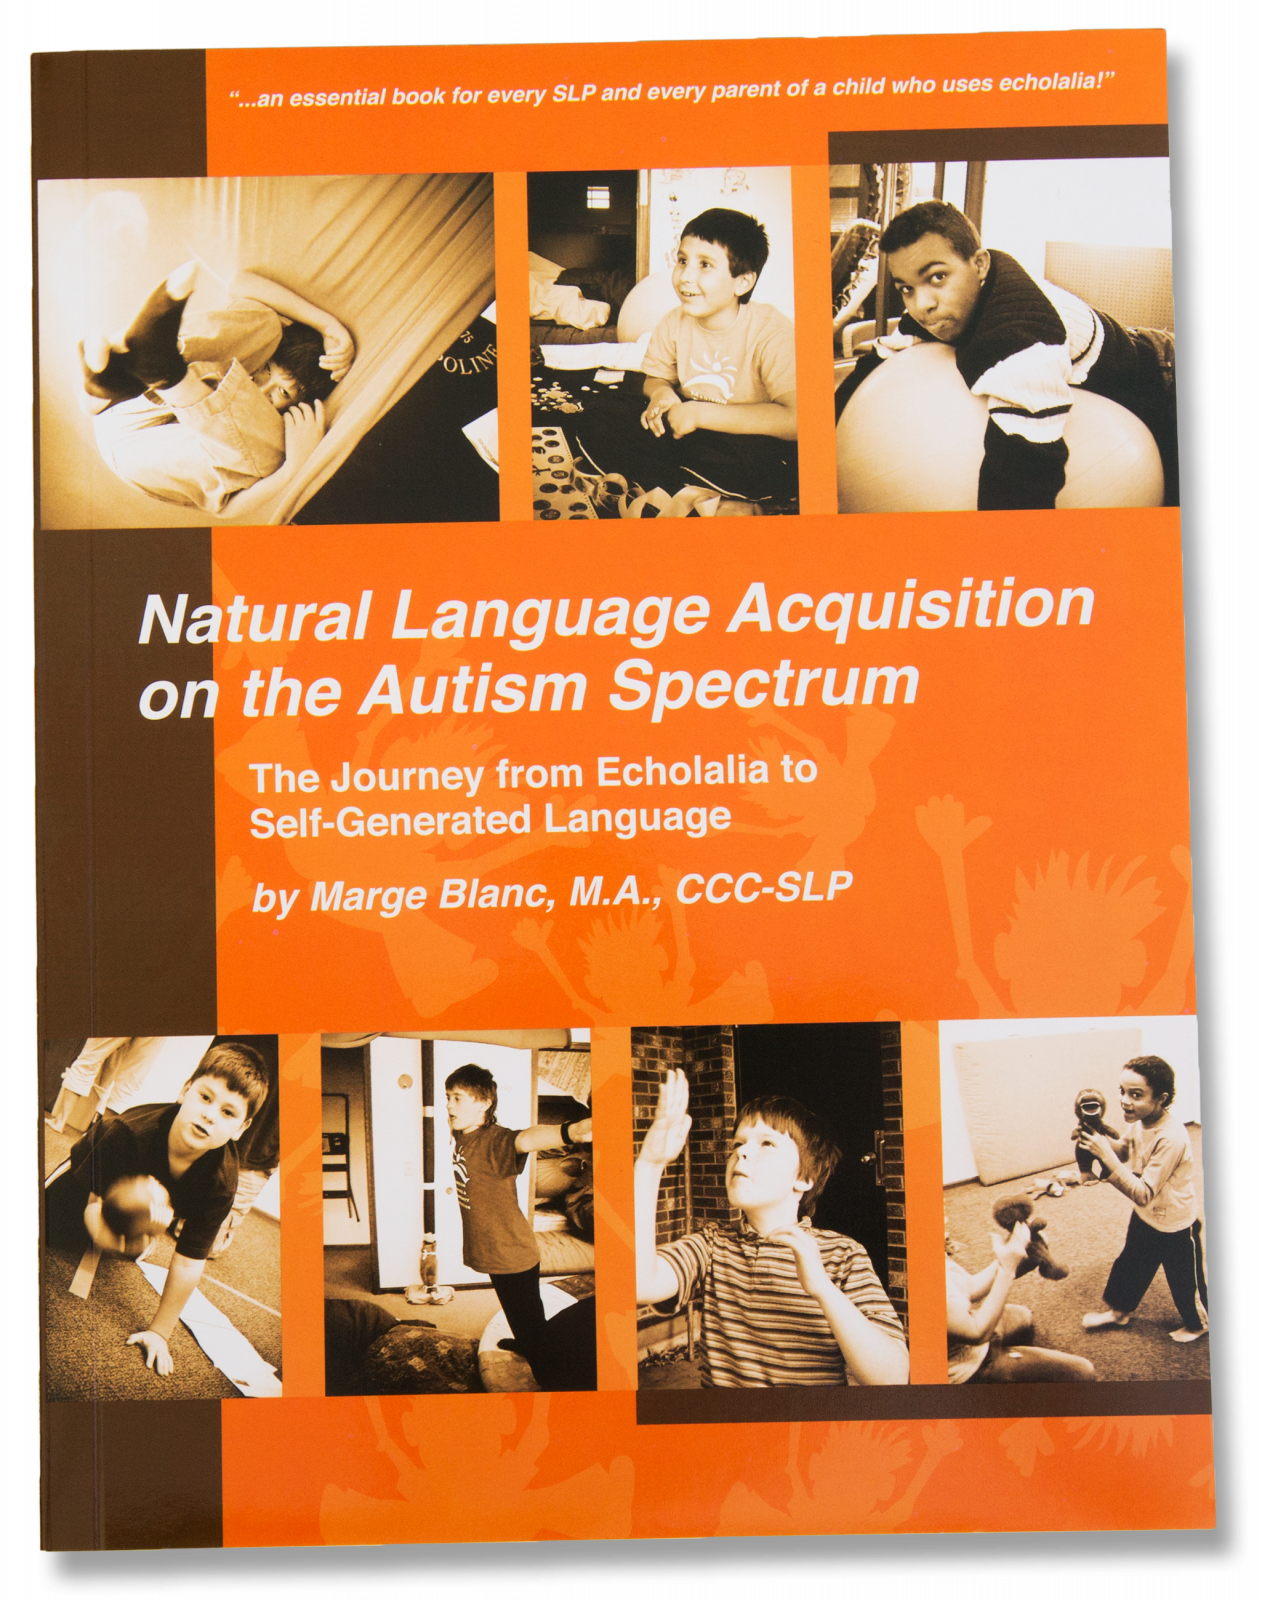 Autisms Full Spectrum >> Natural Language Acquisition On The Autism Spectrum